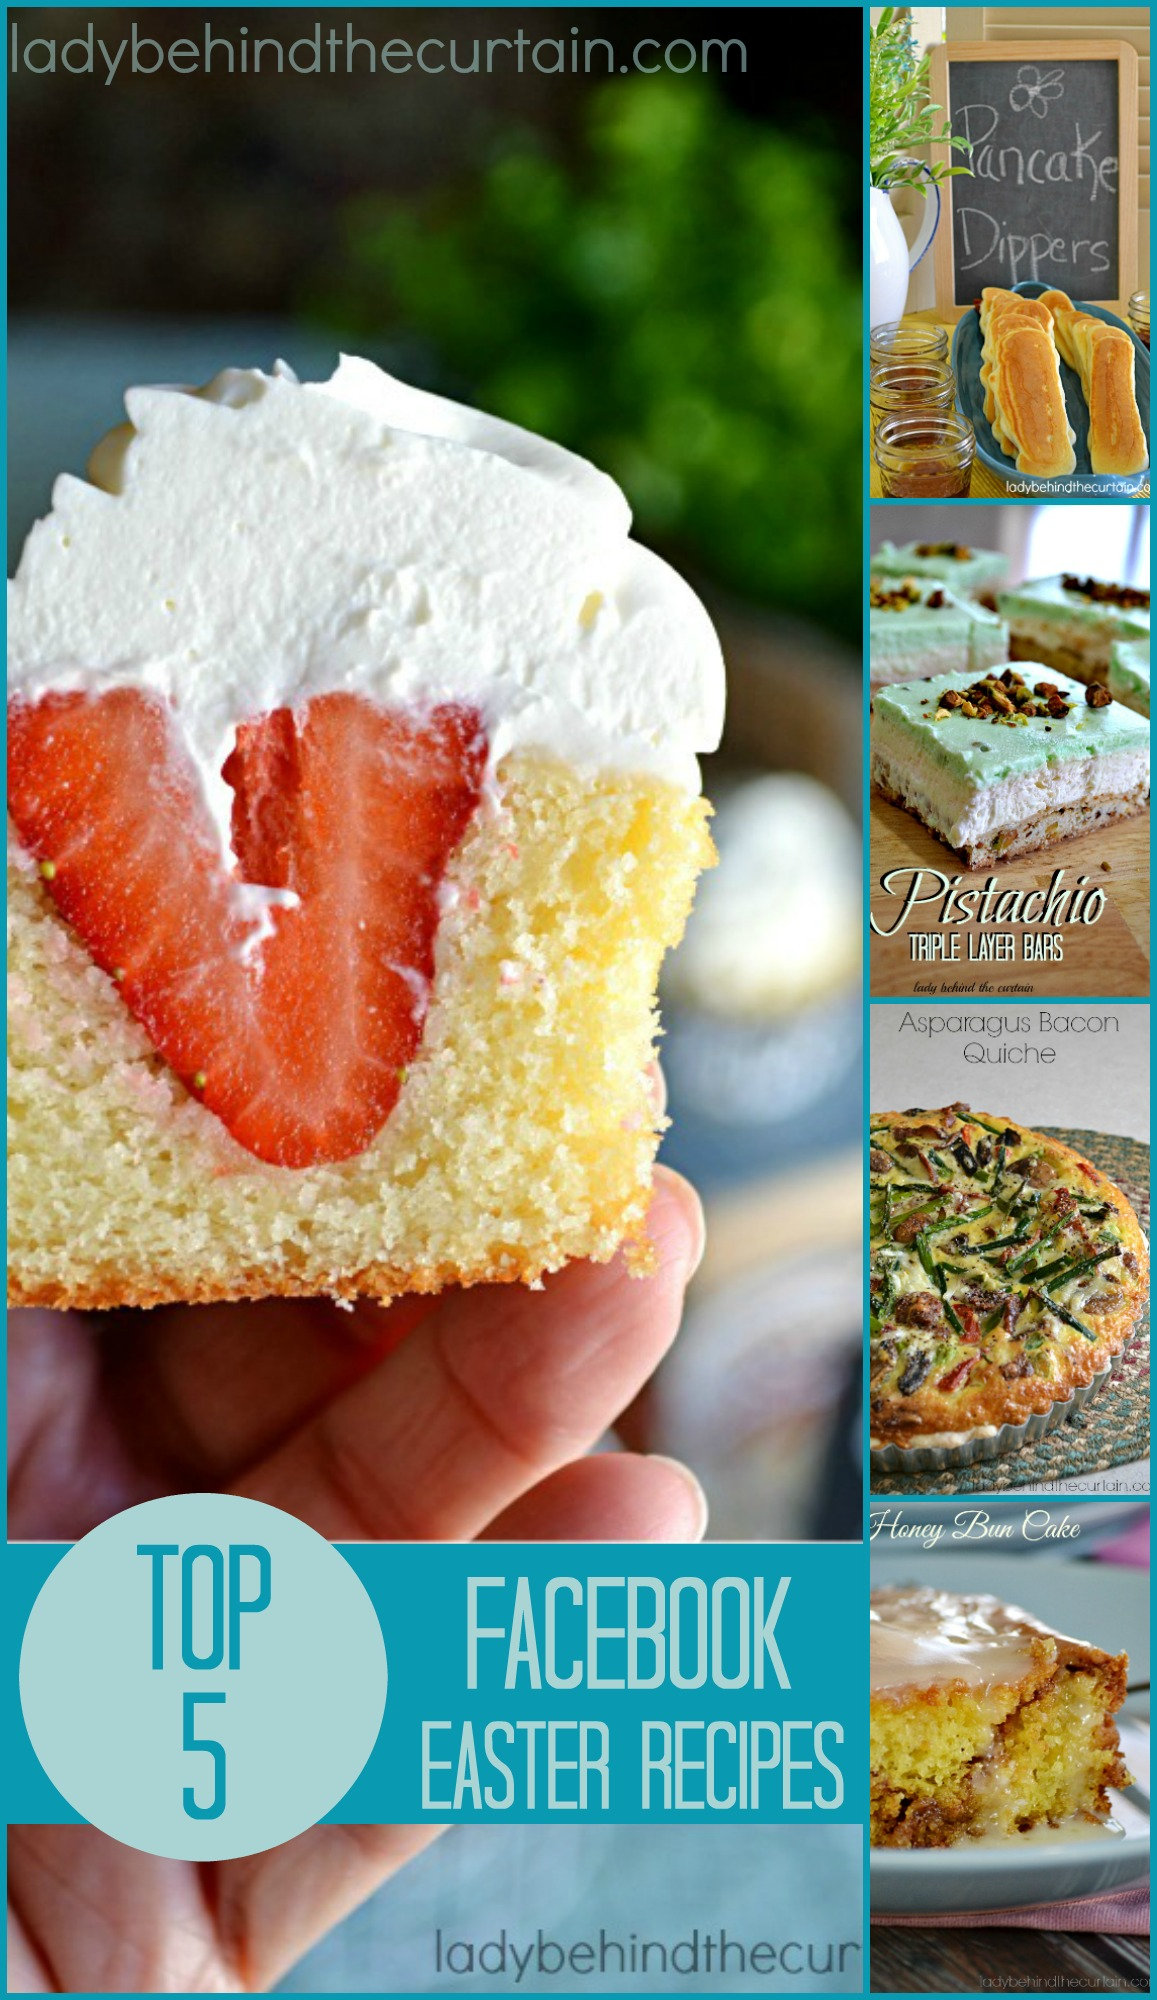 Top 5 facebook easter recipes lady behind the curtain top 5 facebook easter recipes forumfinder Choice Image